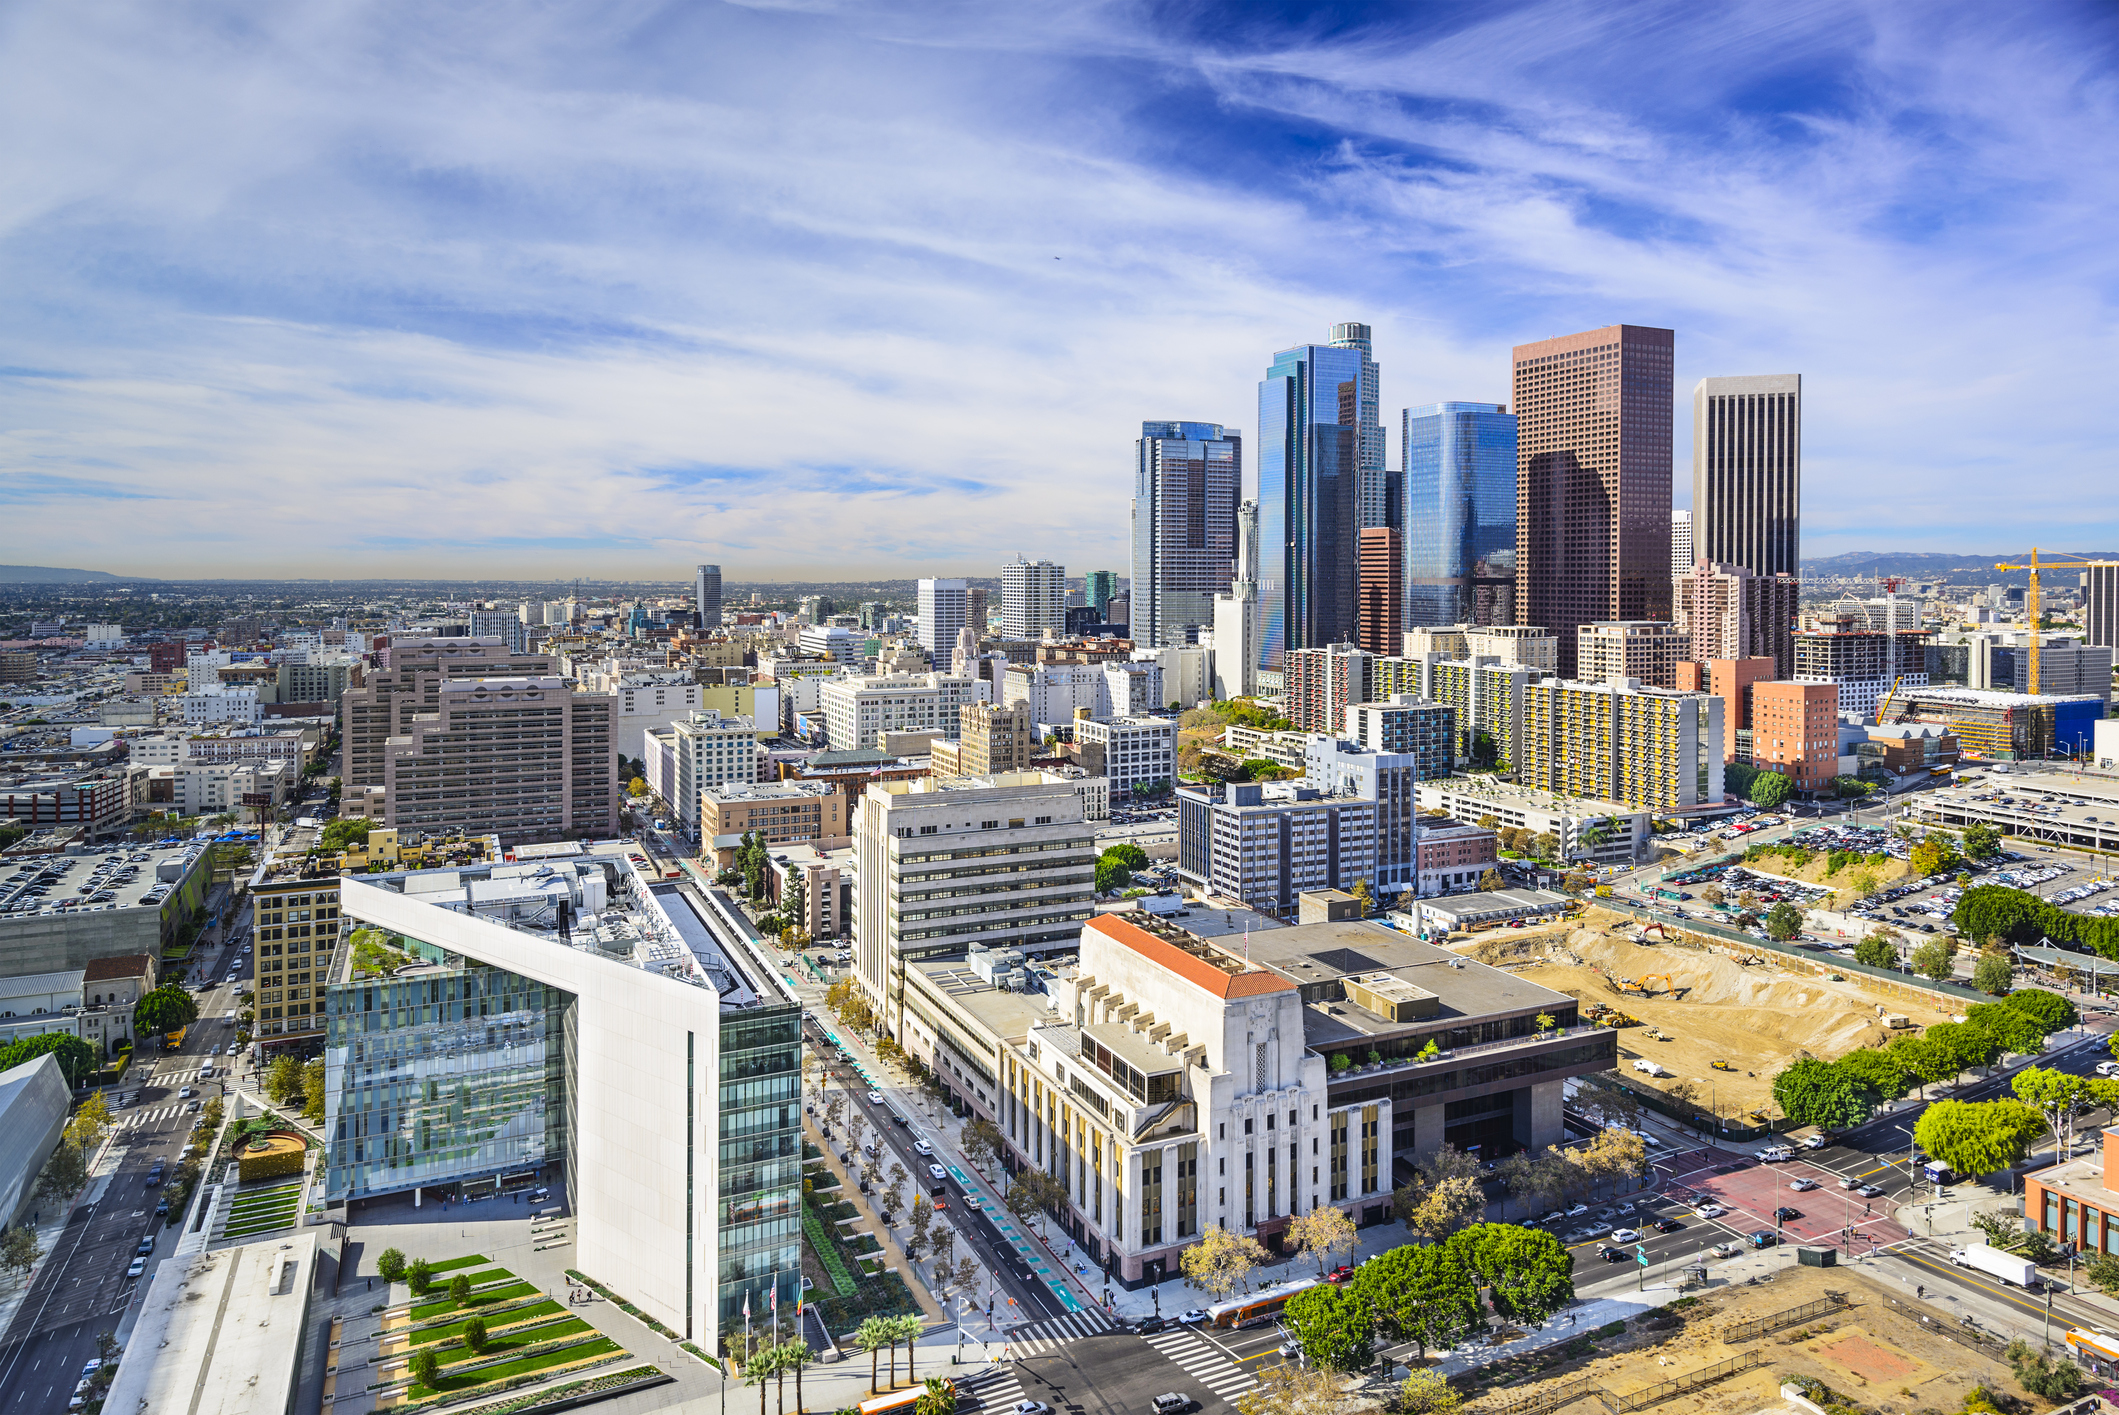 Downtown Los Angeles (Getty Images)